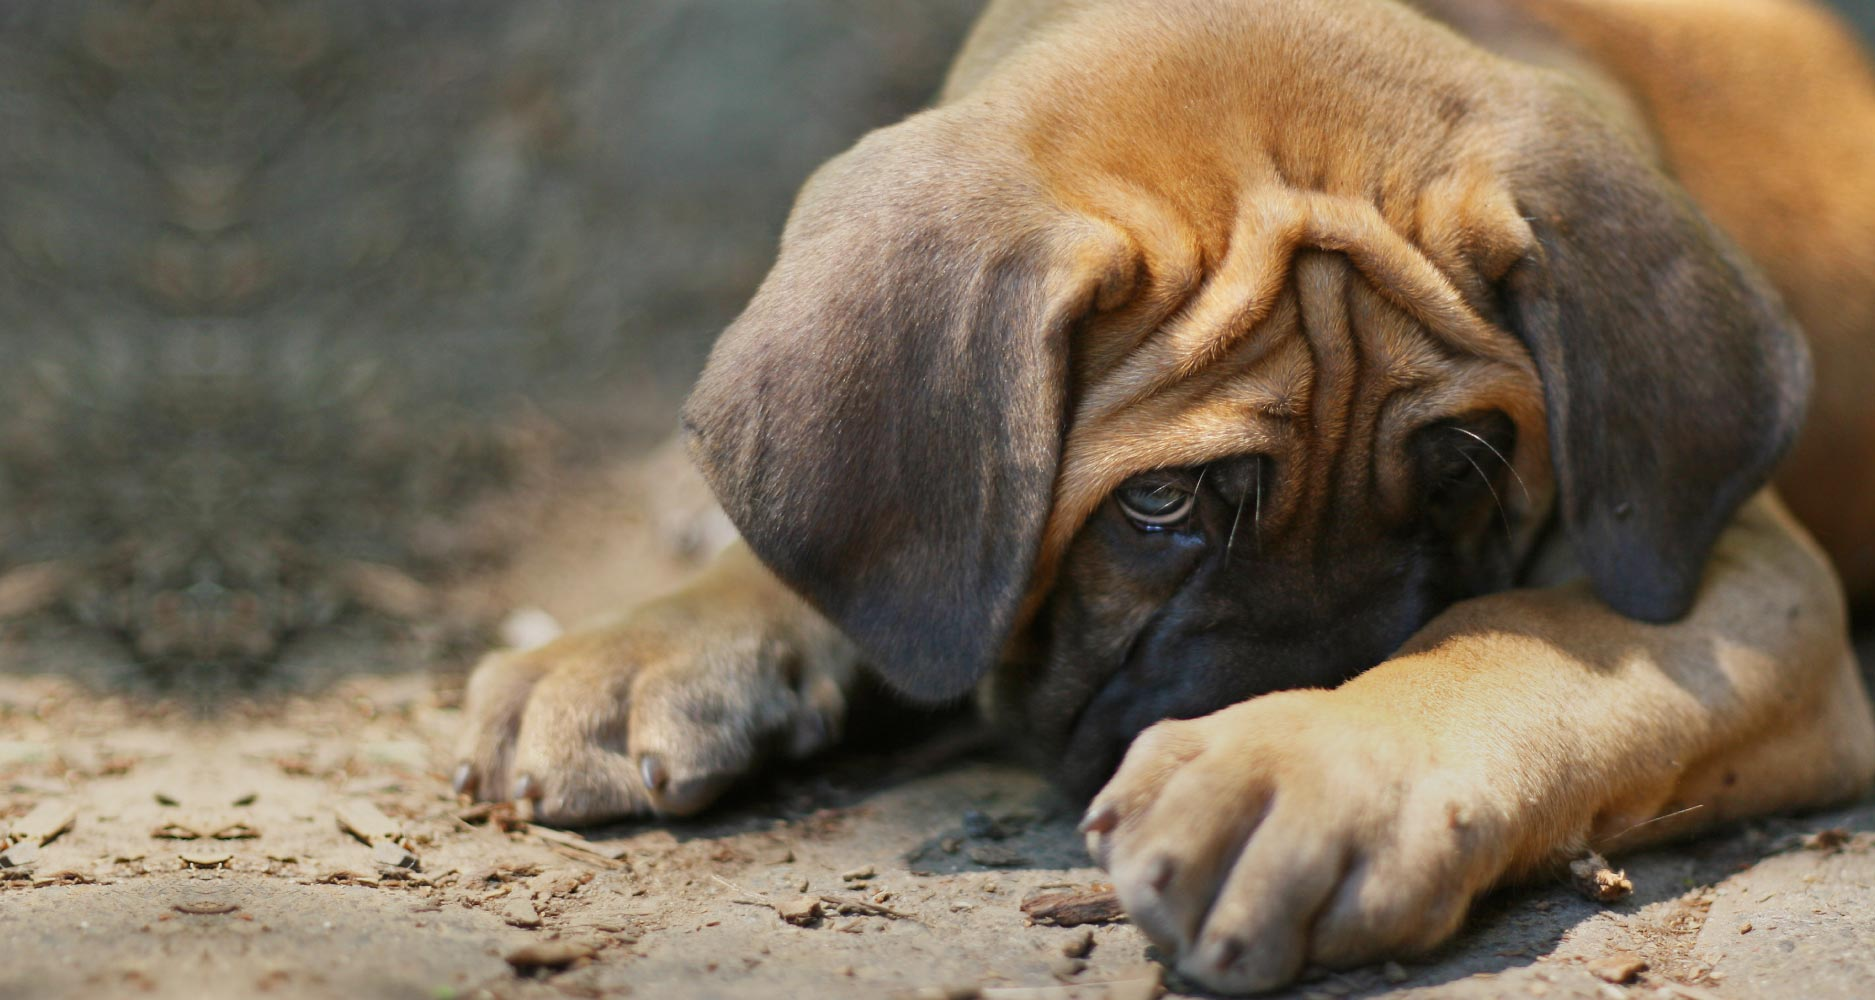 dog common phobias and fears